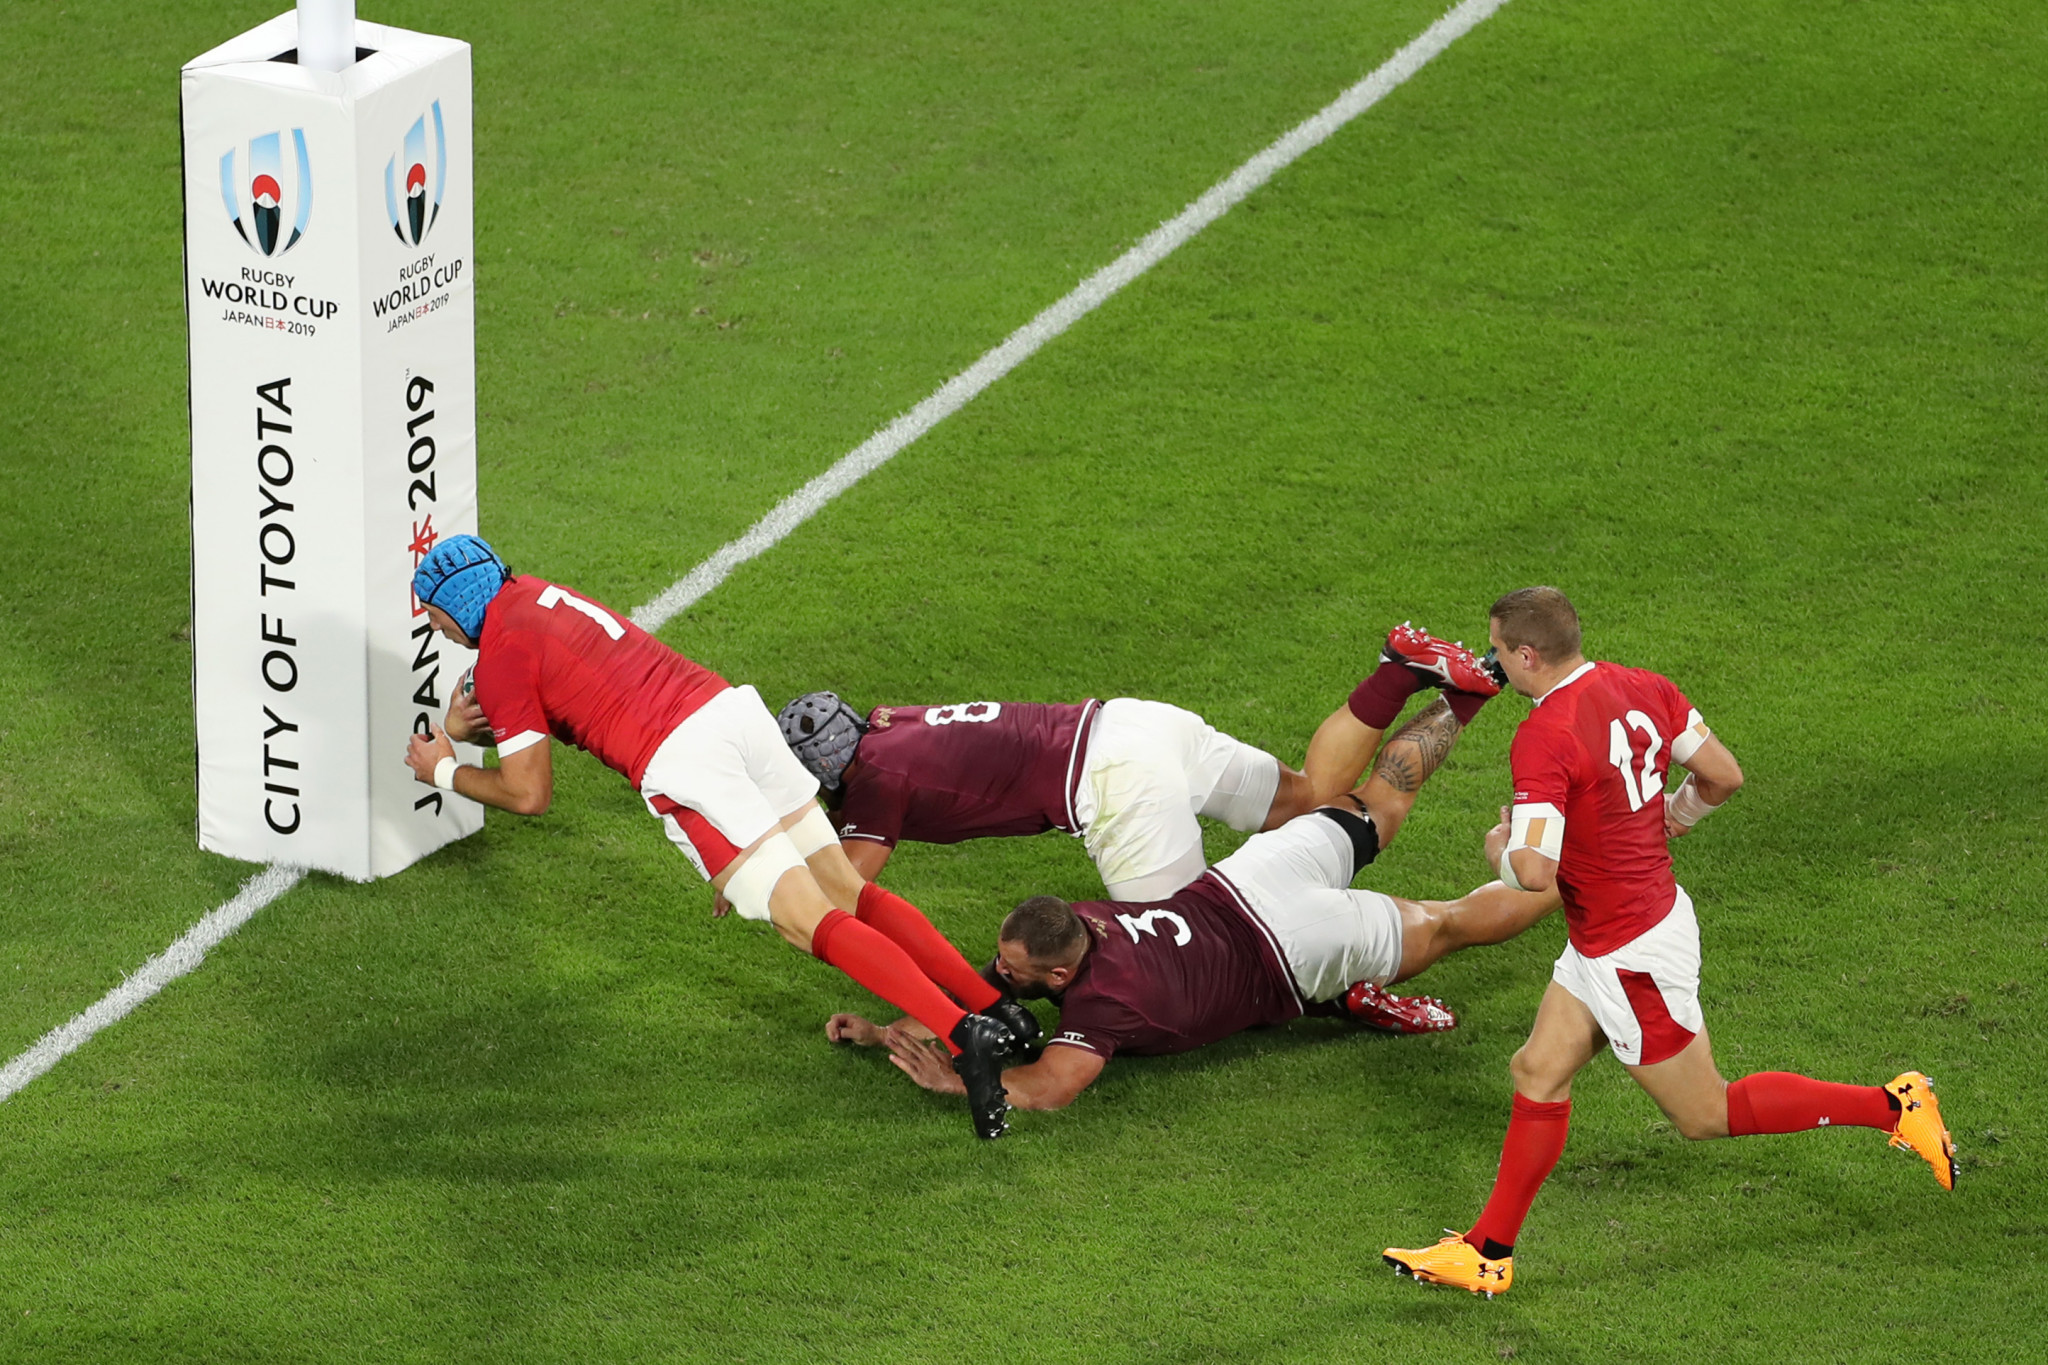 Justin Tipuric scored the second Welsh try as Georgia were swept away ©Getty Images